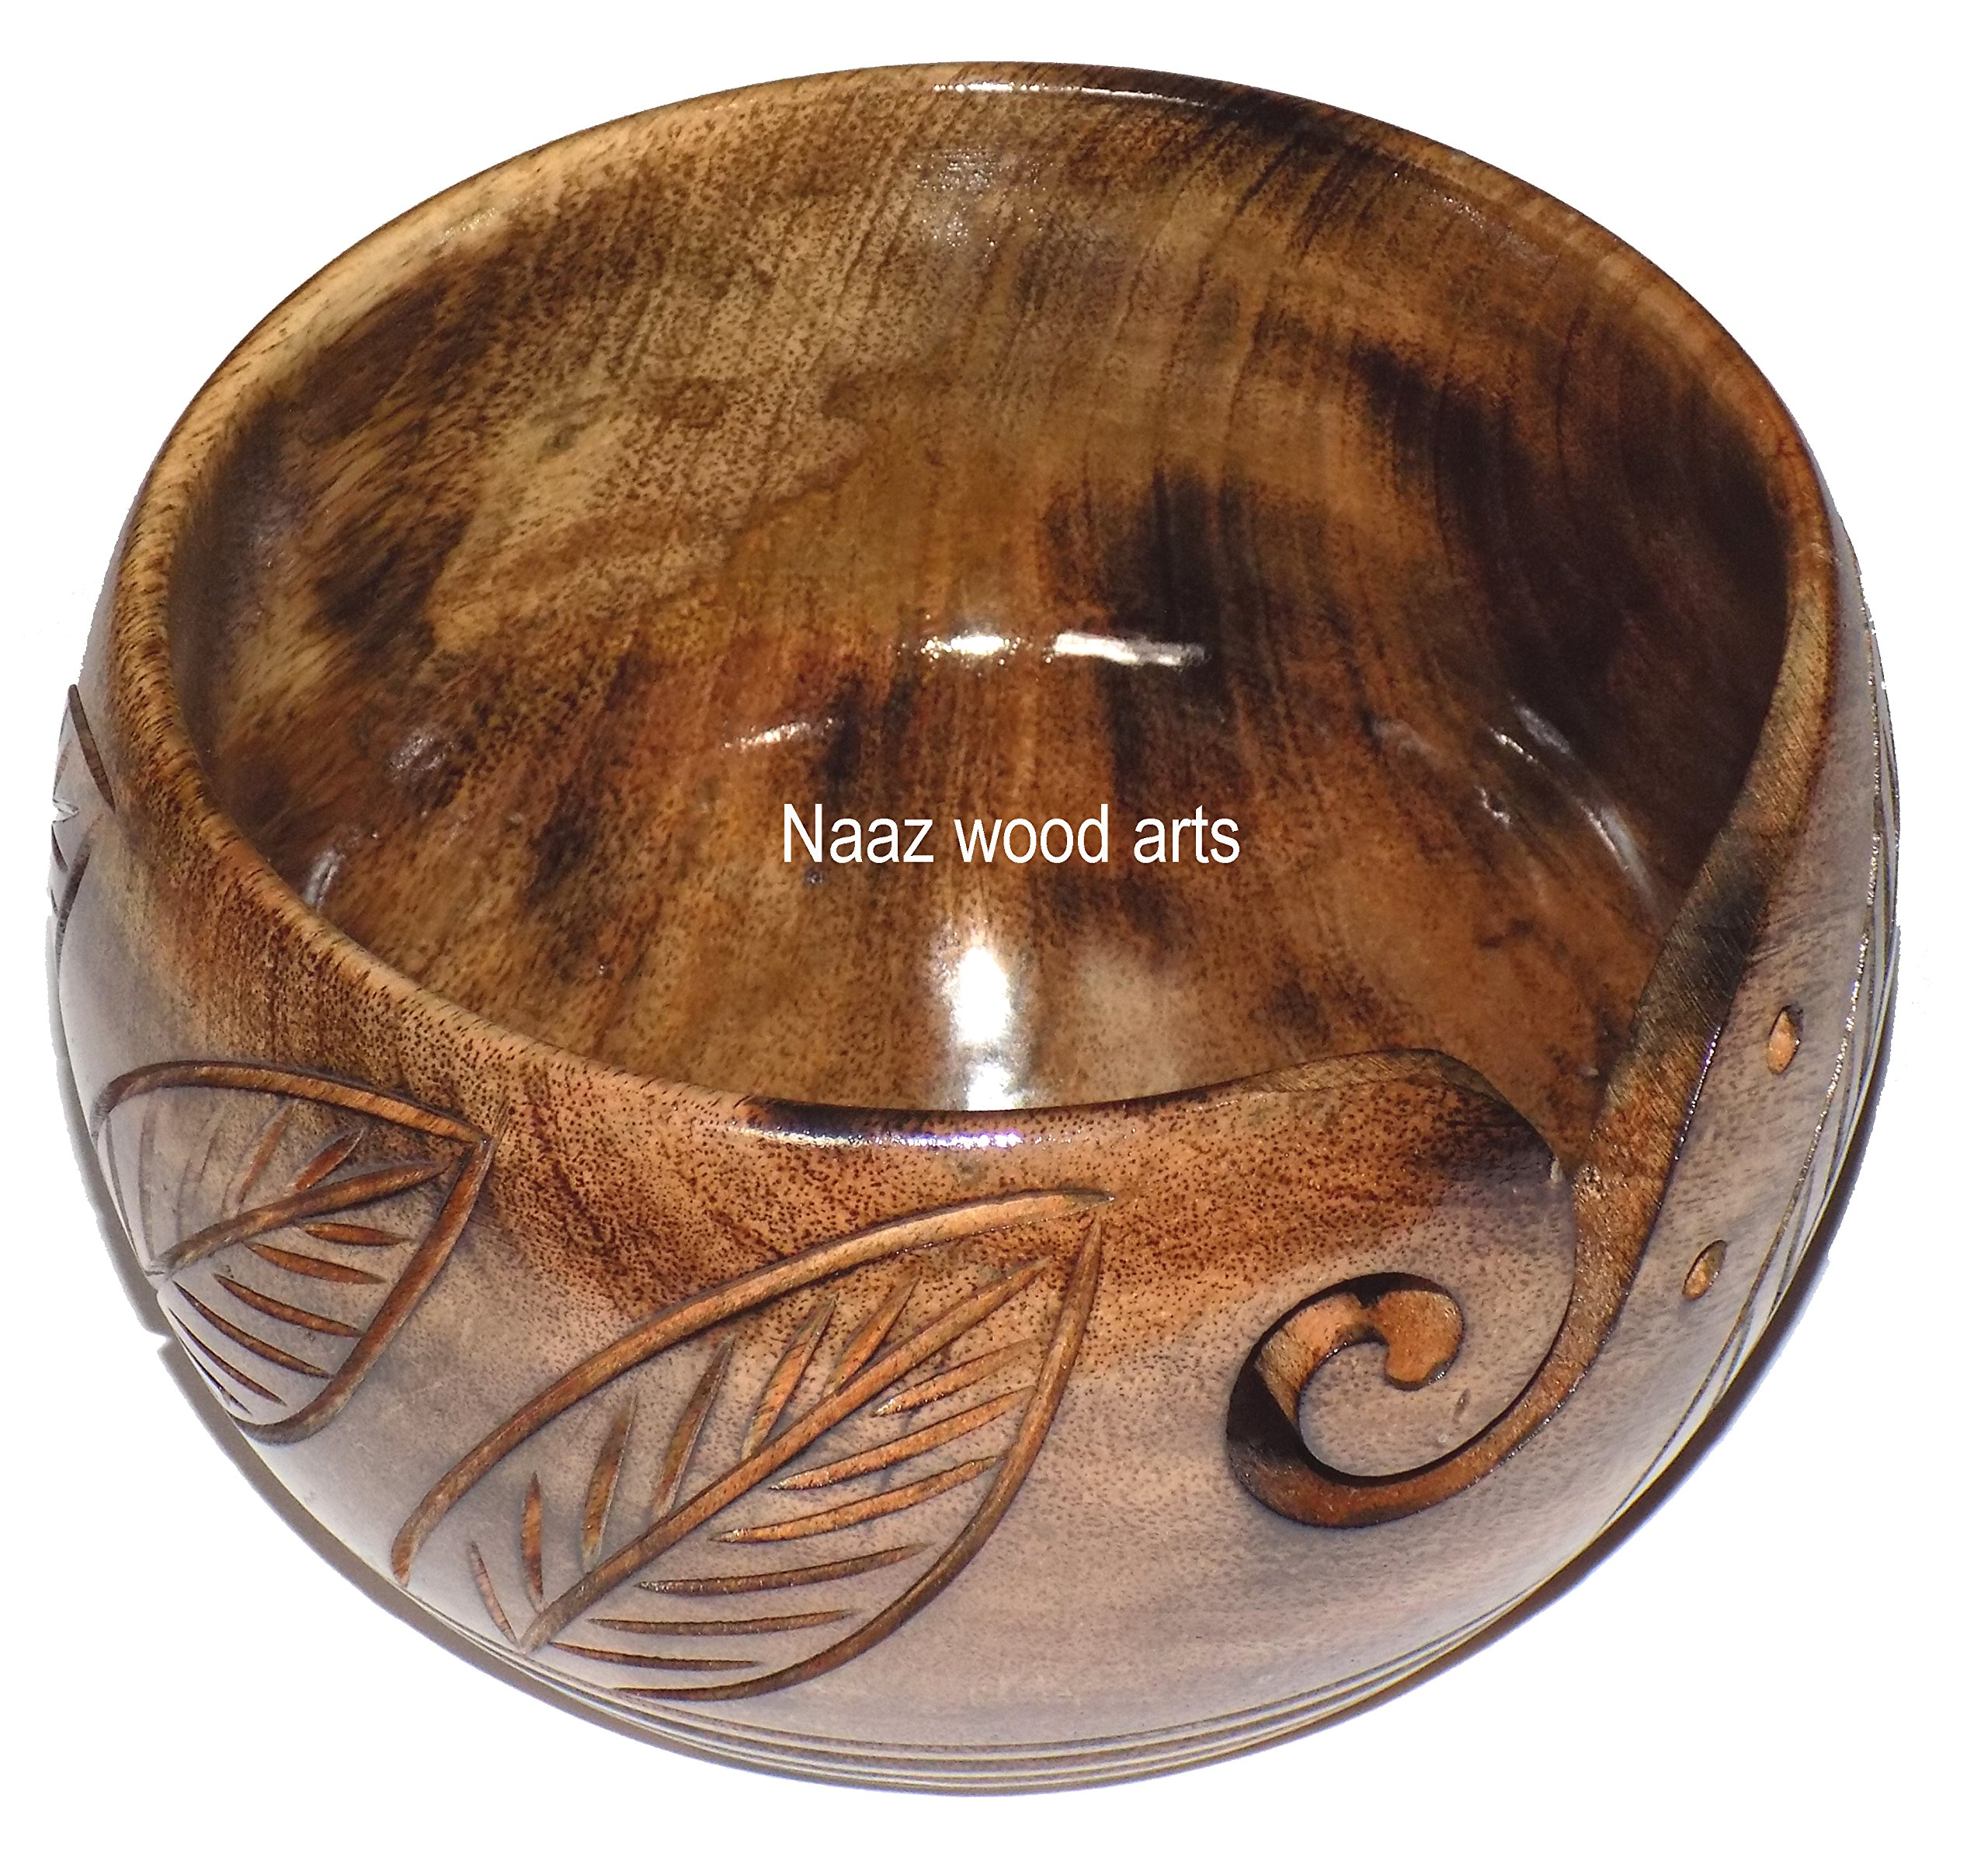 Naaz Wood Arts Yarn Bowl-7''x4'' Rosewood -Wooden with Handmade from Sheesham Wood- Heavy & Sturdy to Prevent Slipping. Perfect Yarn Holder for Knitting & Crocheting Burn antiqe with Hand Carved New s